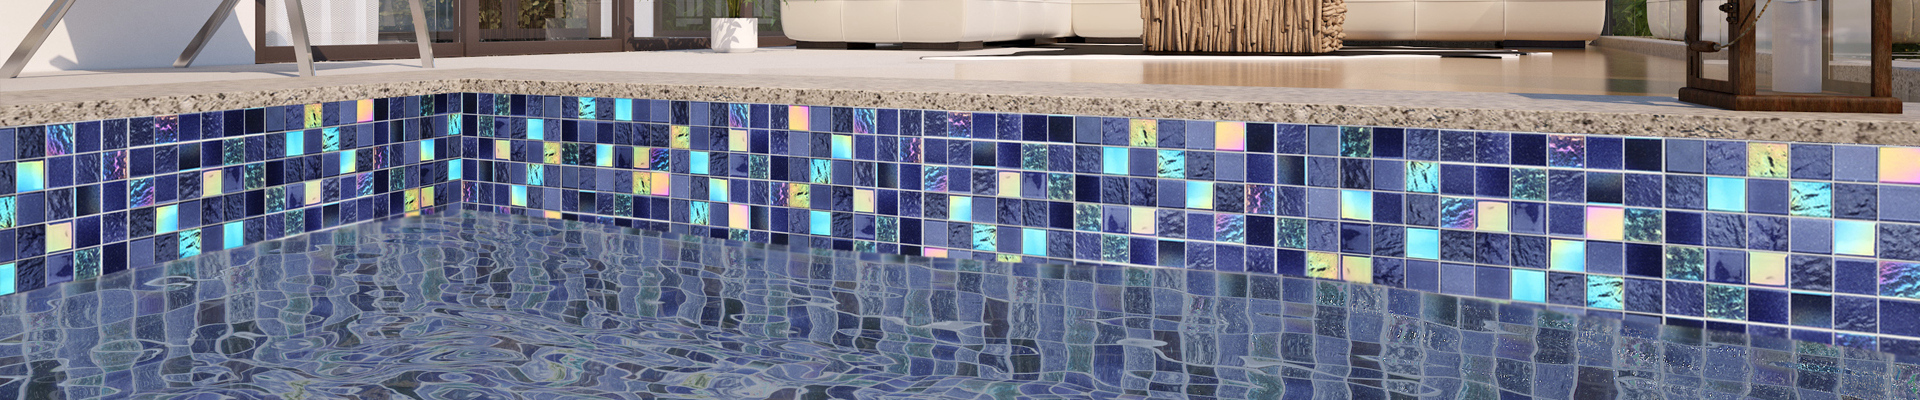 video-surround white pool tile supplier for swimming pool-Heng Xing-img